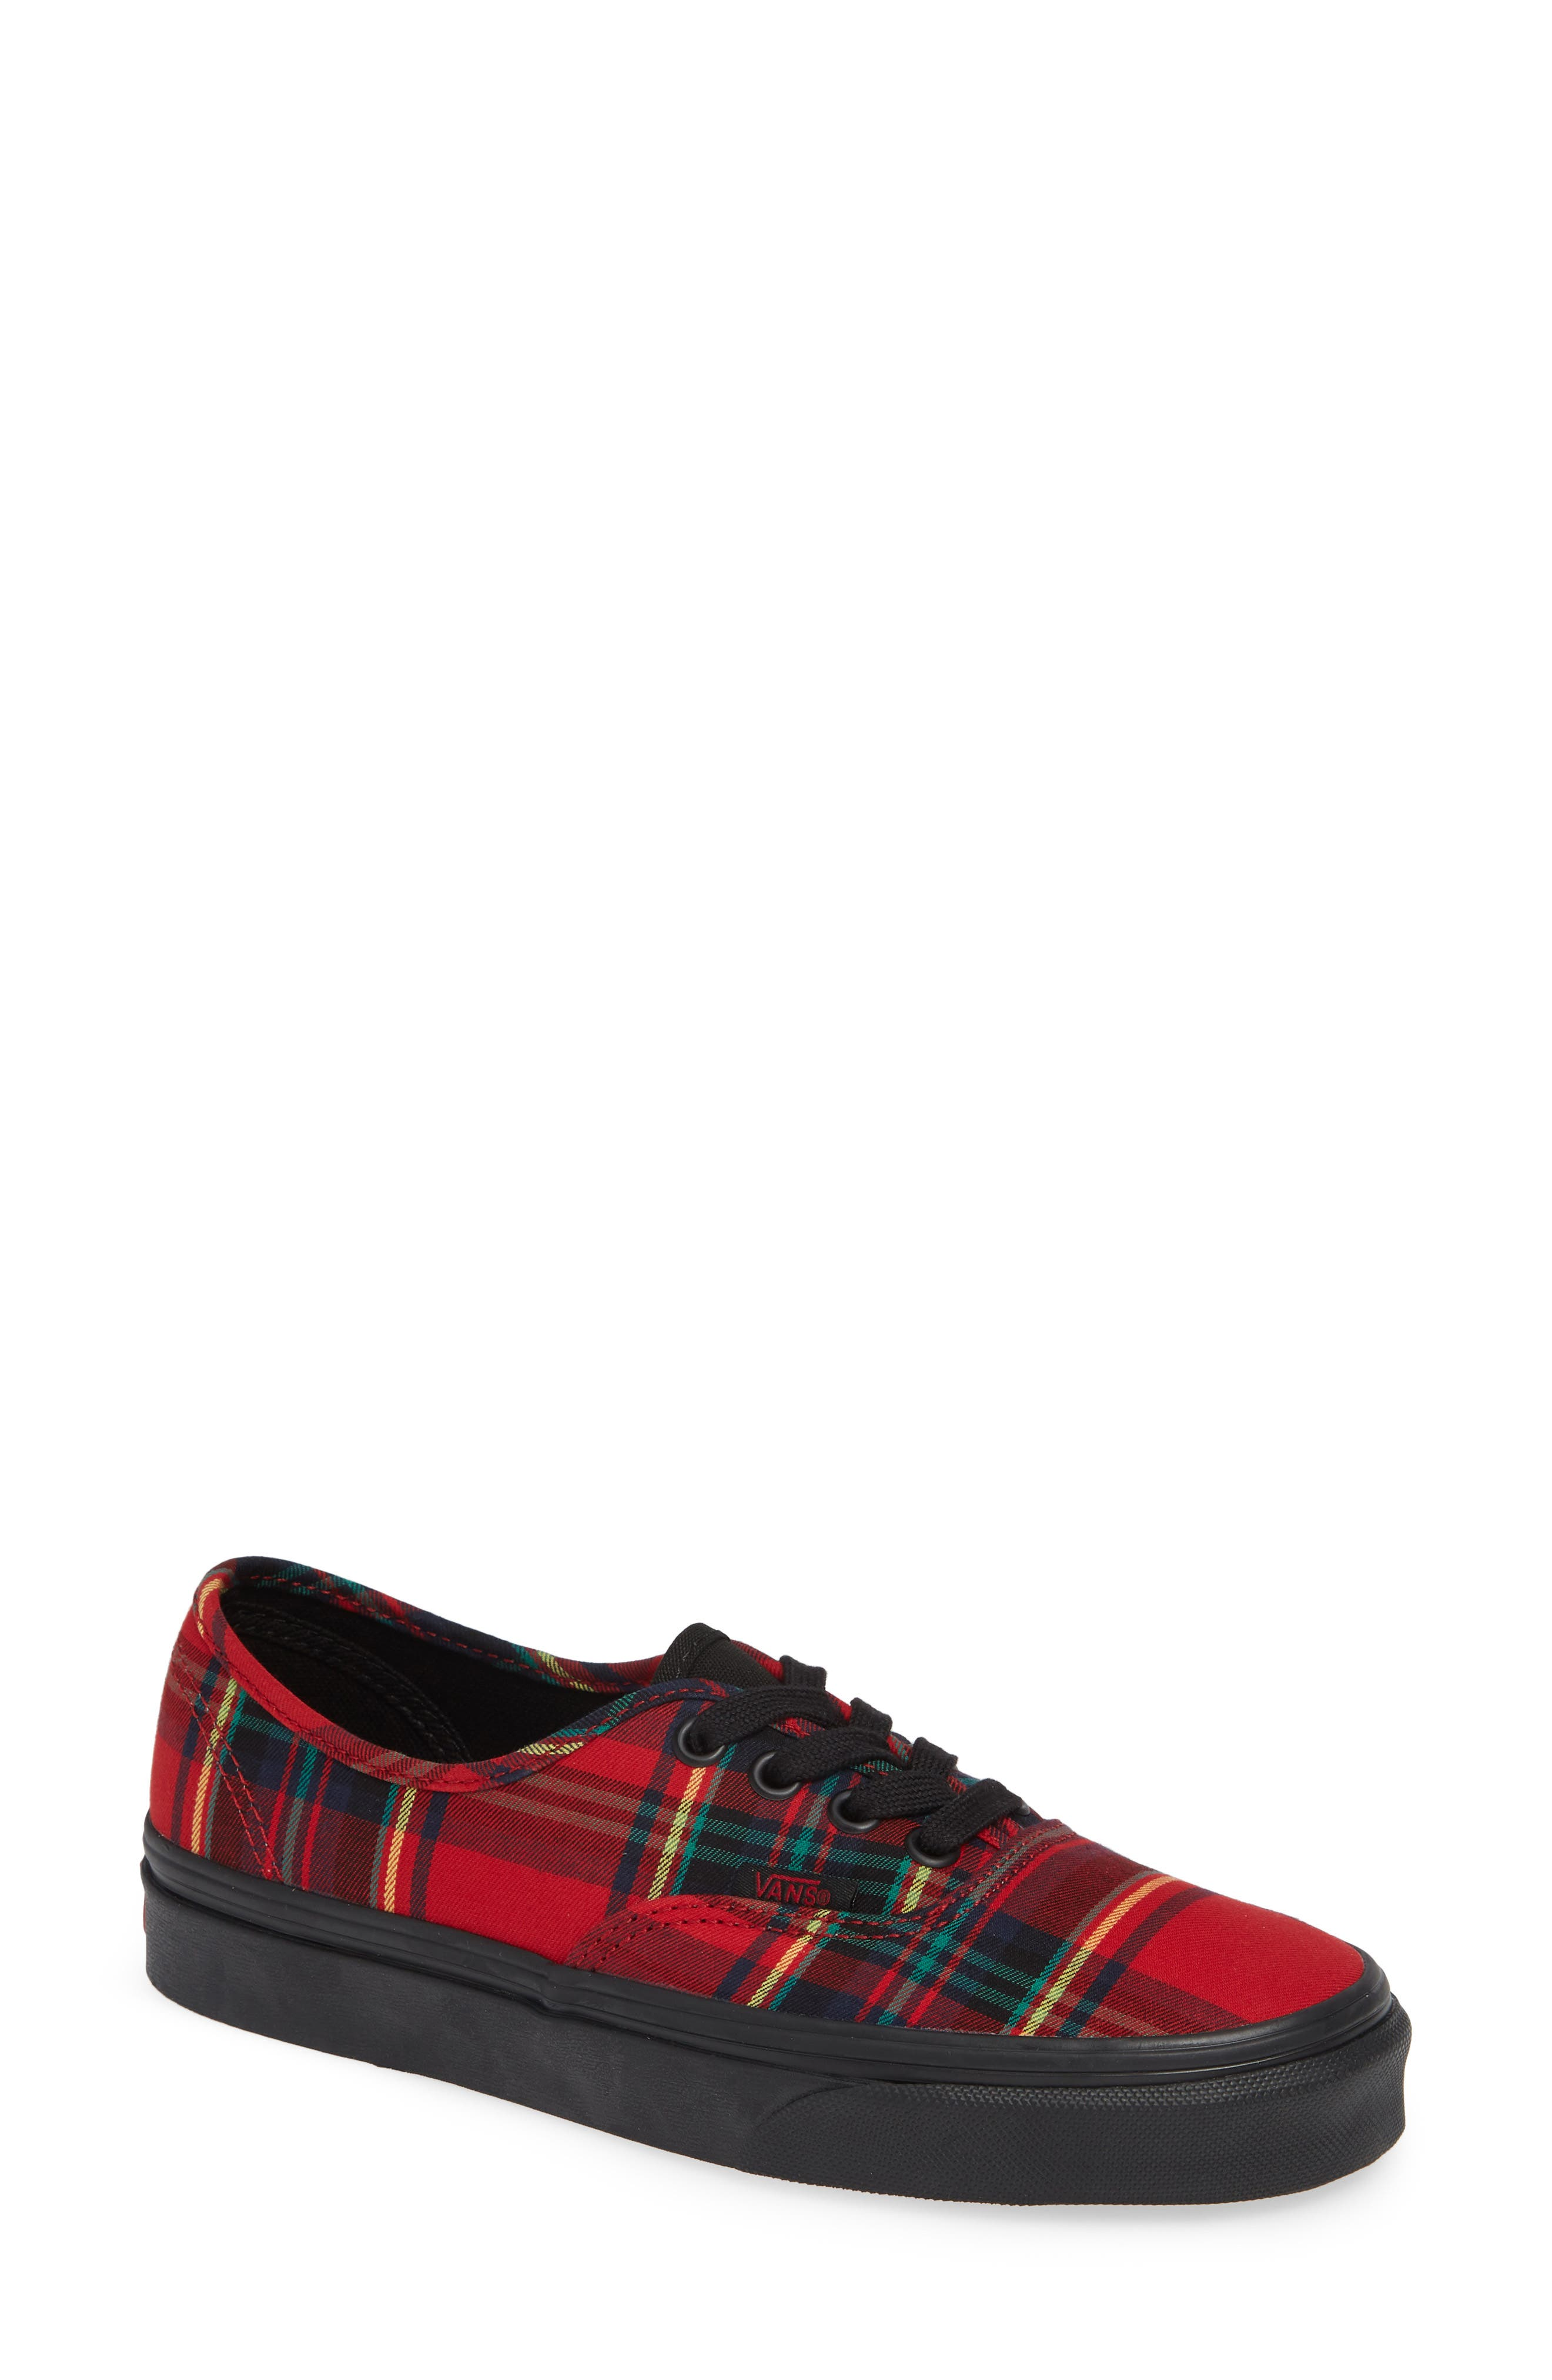 'Authentic' Sneaker,                             Main thumbnail 1, color,                             Plaid Mix Red